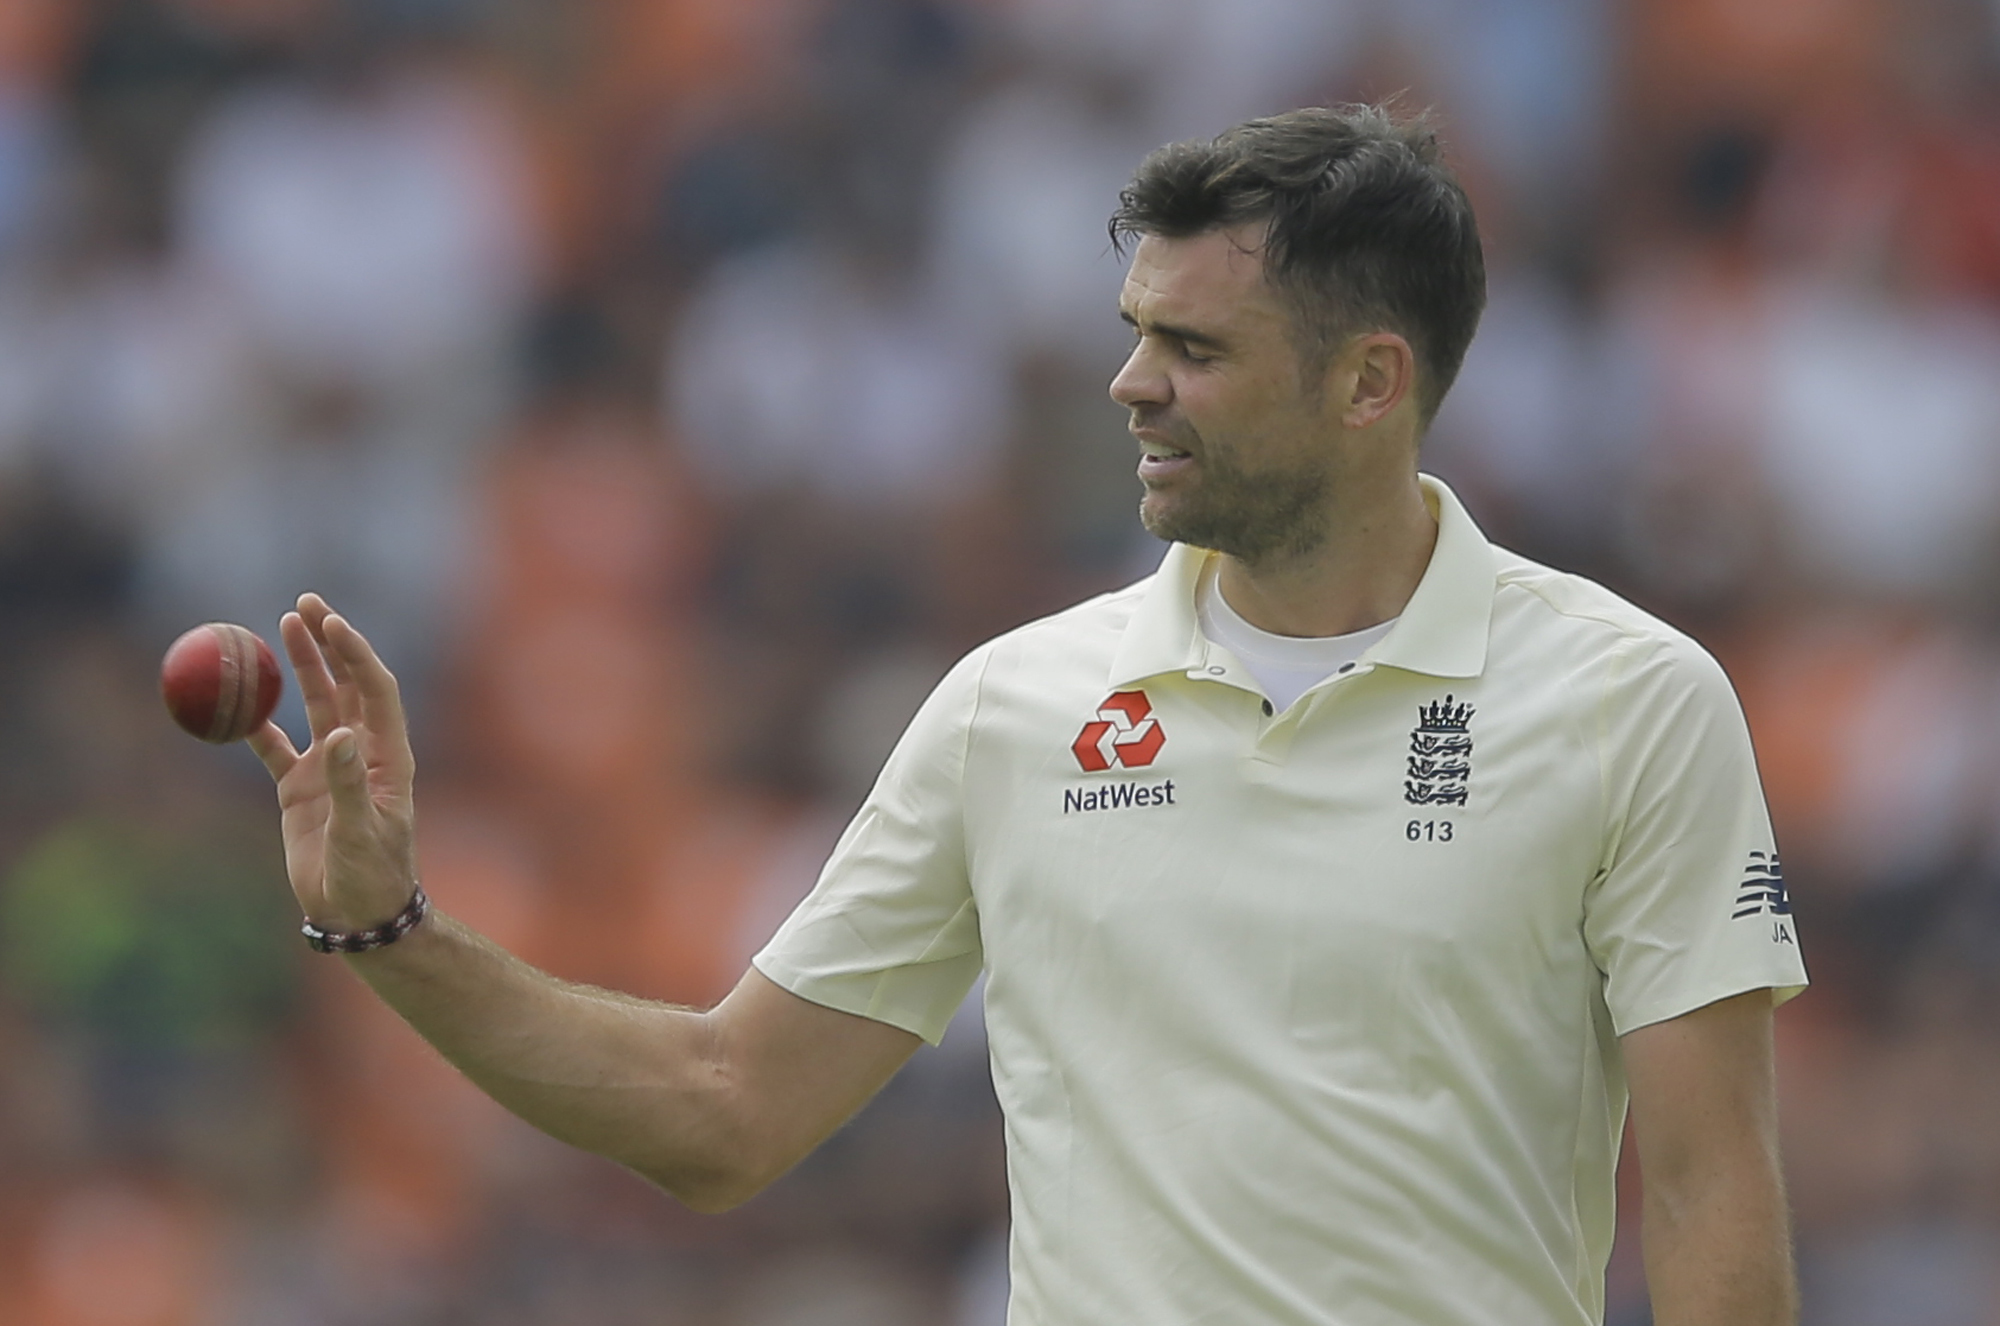 England's James Anderson prepares to bowl during the fourth day of the second test cricket match between Sri Lanka and England in Pallekele, Sri Lanka, Saturday, Nov. 17, 2018. (AP Photo/Eranga Jayawardena).